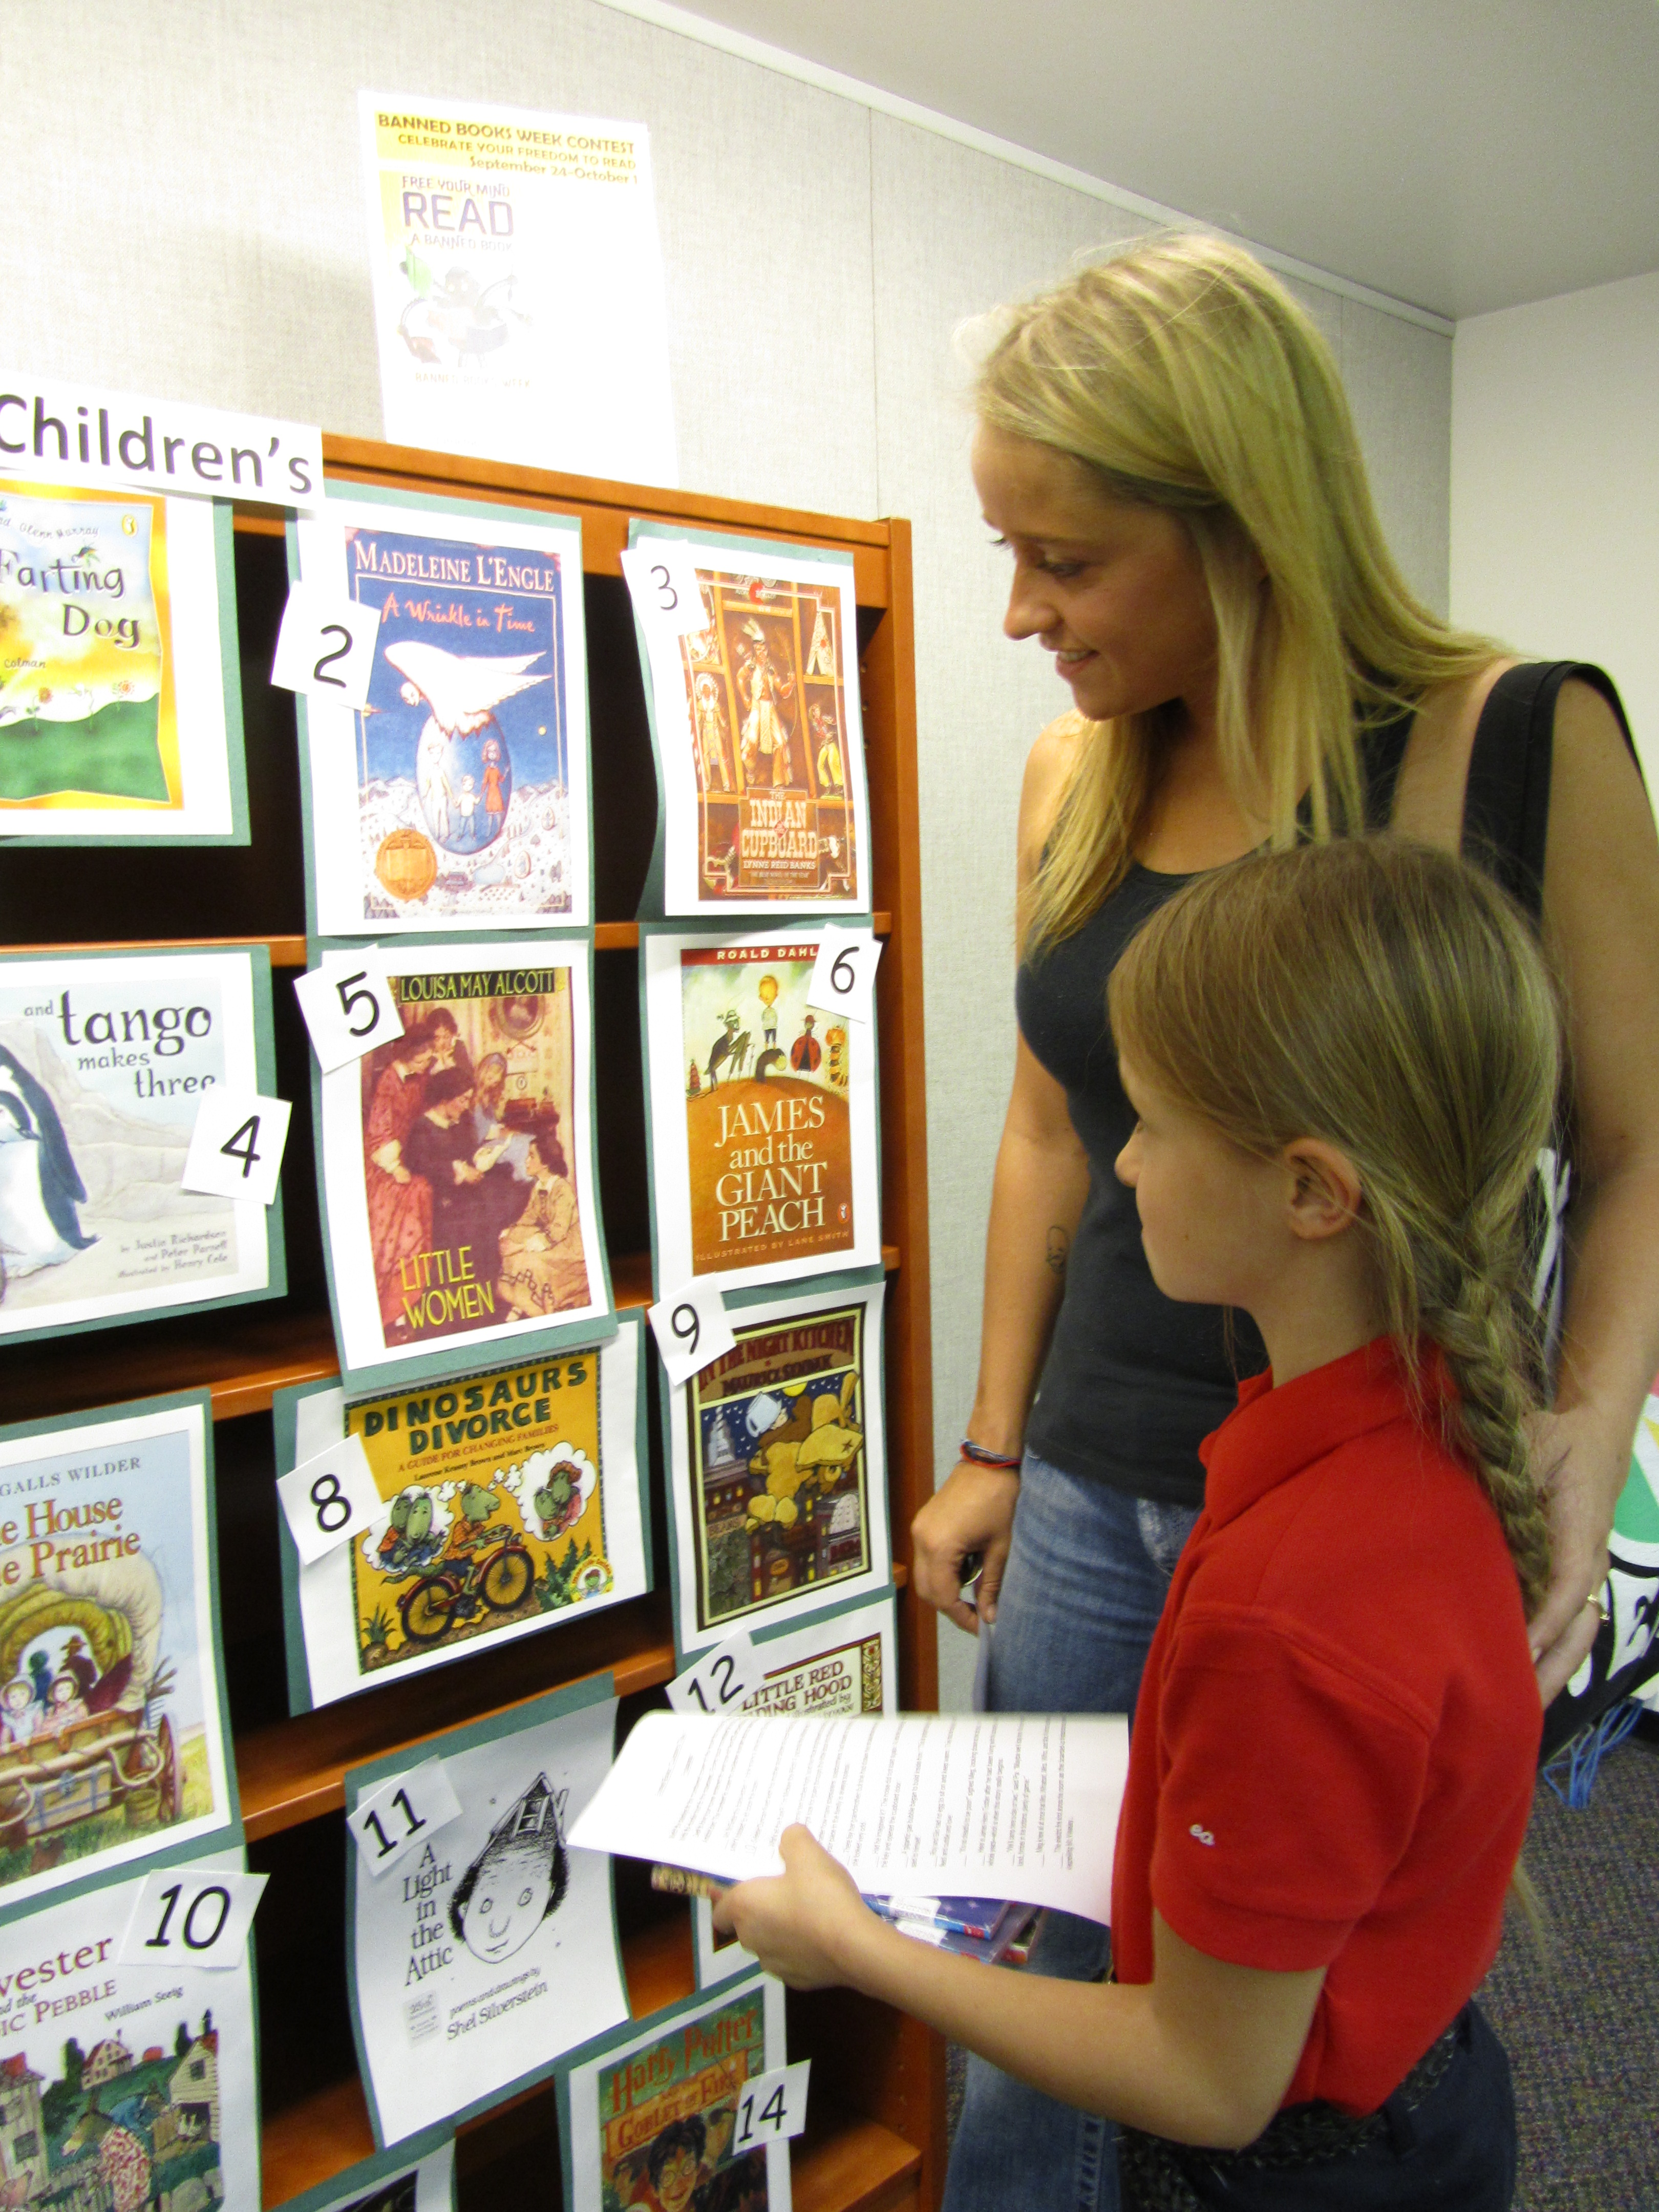 Patrons match passages from banned books with their respective covers at Bemis Public Library in Littleton, Colorado. More than 30 book covers were on display.